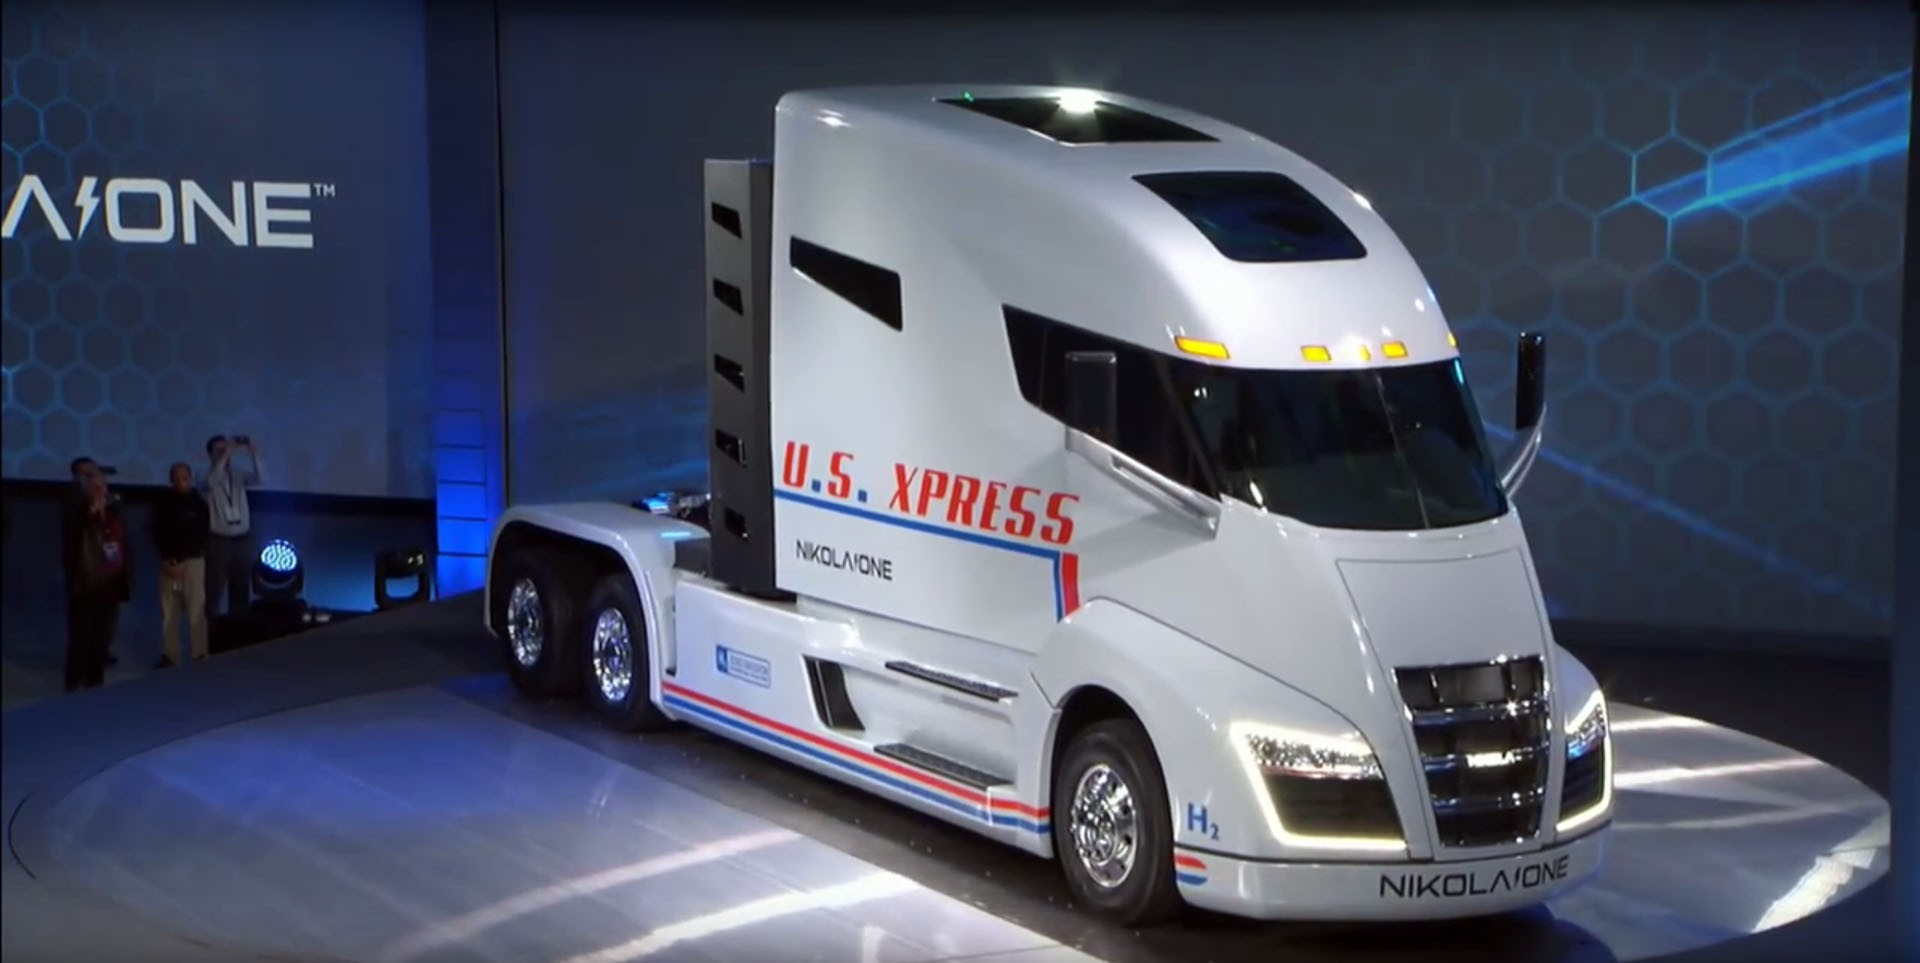 Nikola Sues Tesla Over Truck Design, Seeks $2 Billion in Damages